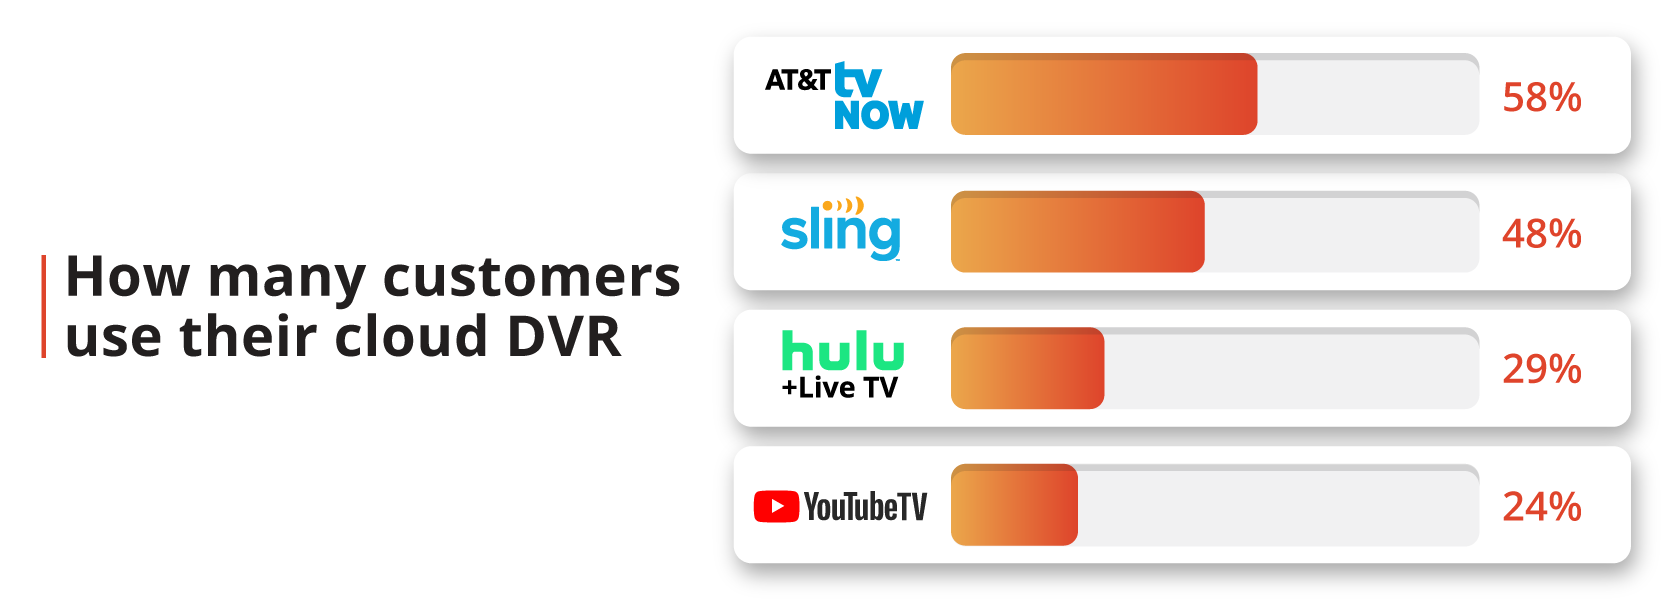 How many customers use their cloud DVR?